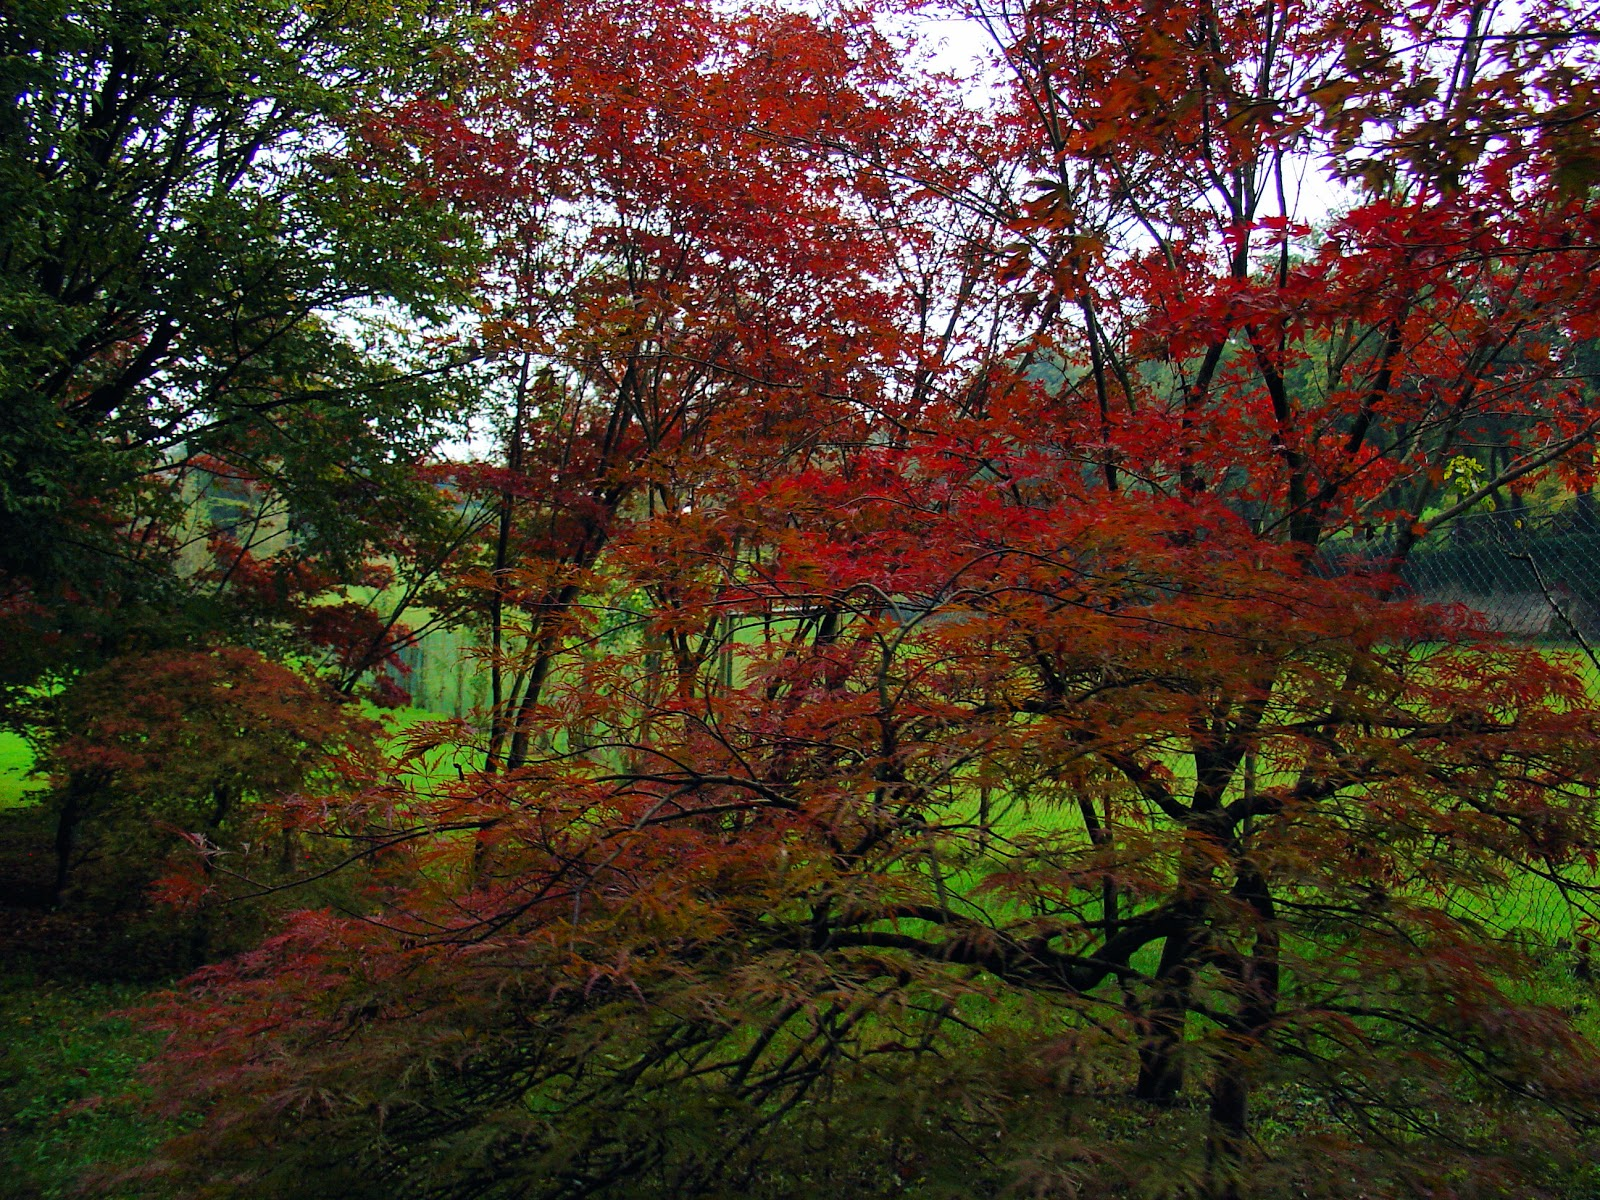 Japanese Maples ablaze with fiery hues of autumn.